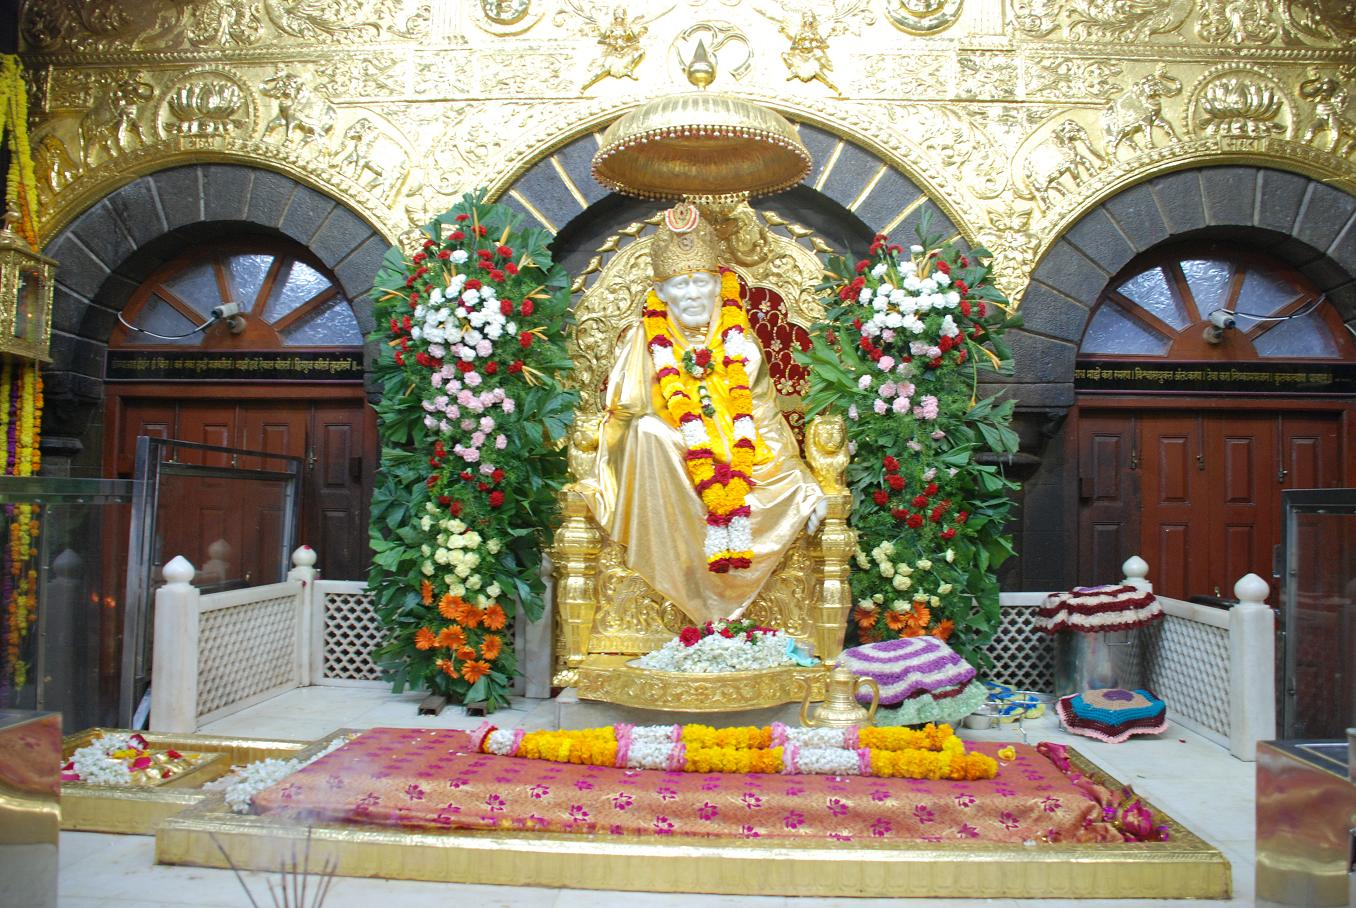 Shri Sai Baba Temple at Shirdi